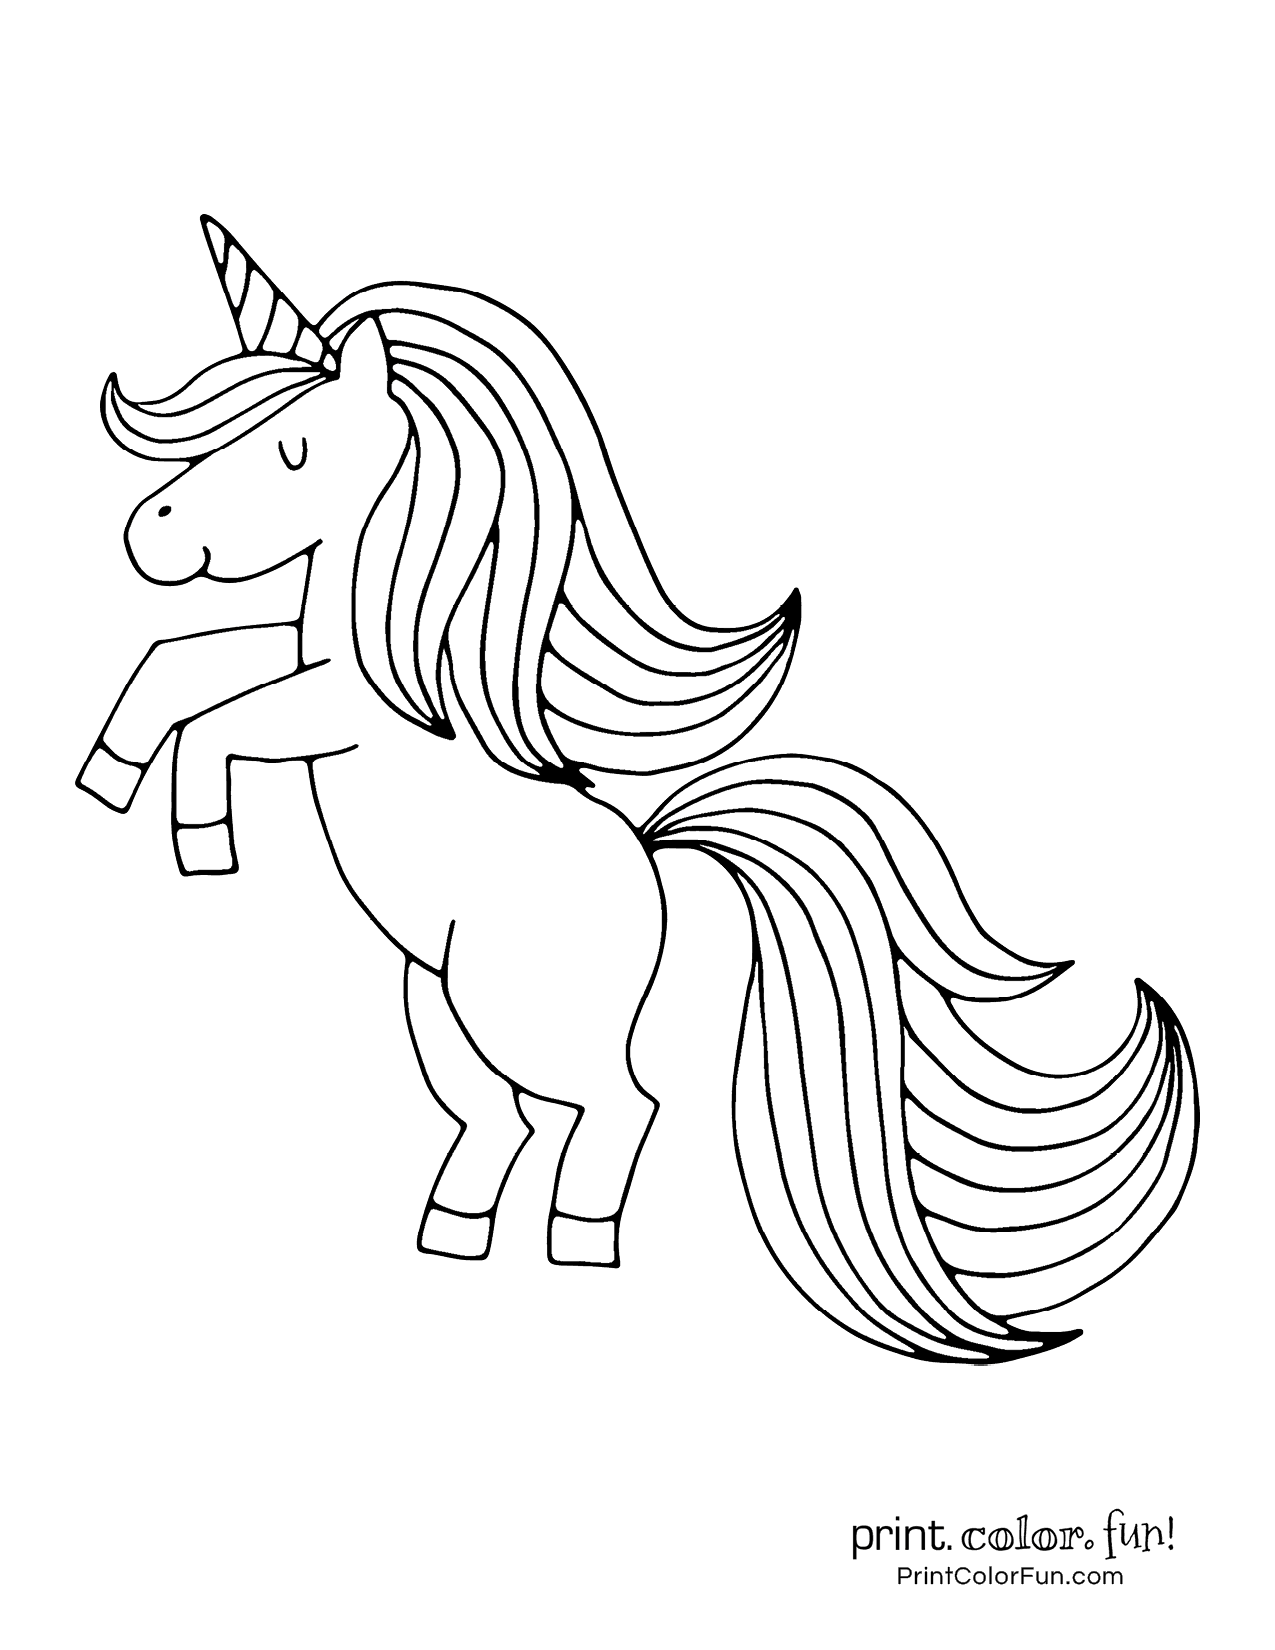 100 Magical Unicorn Coloring Pages The Ultimate Free Printable Collection At Print Color Fun Co Unicorn Coloring Pages Fairy Coloring Pages Coloring Pages